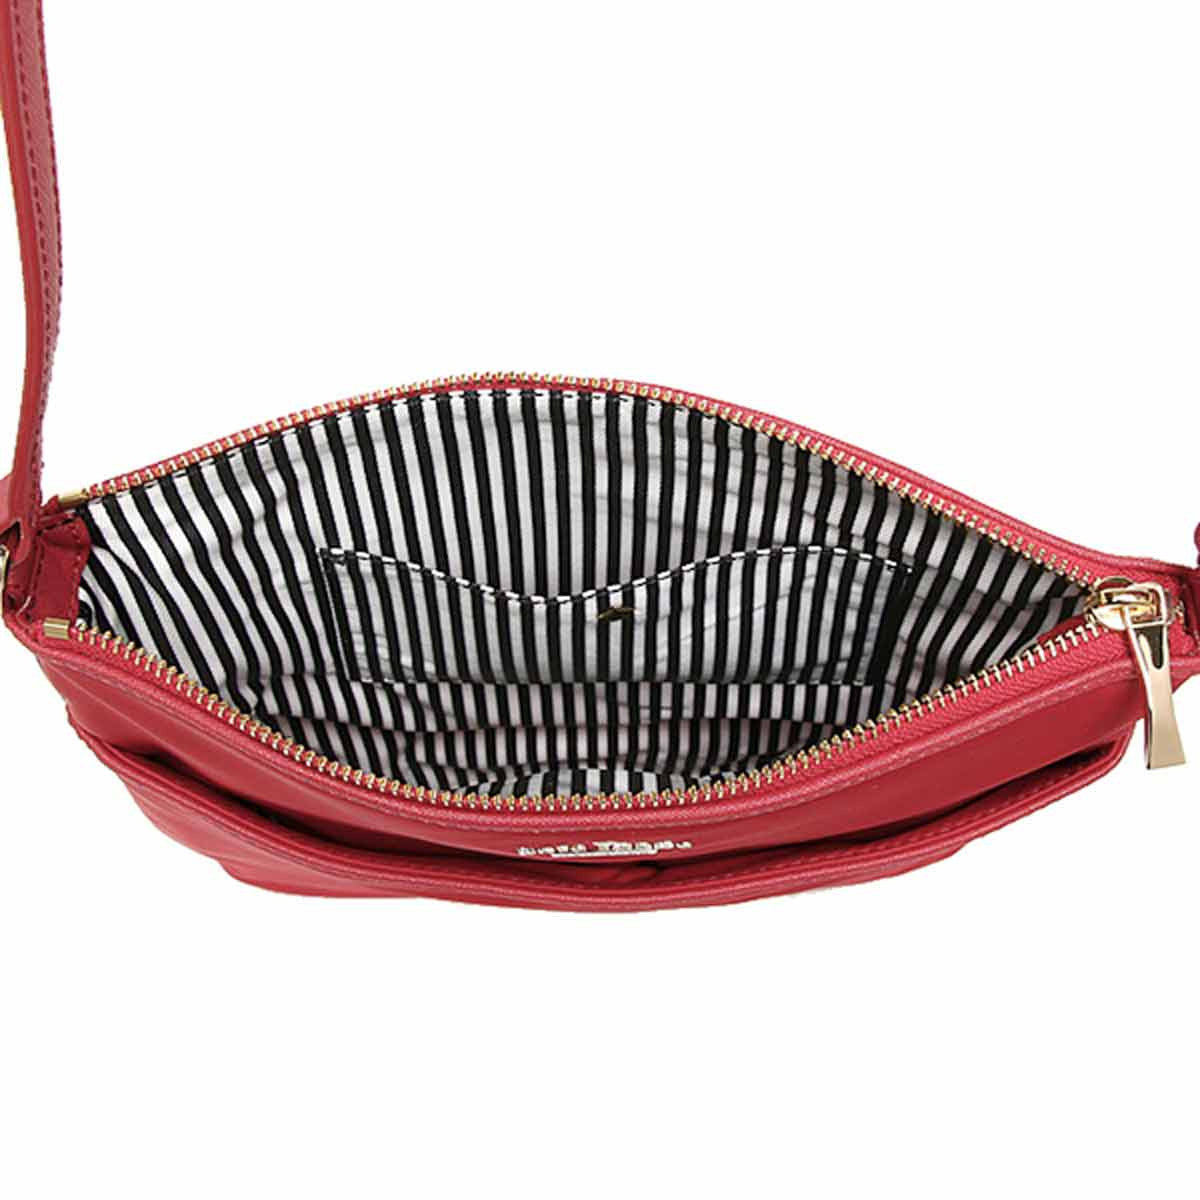 Kate Spade PXRU5388-648 Women's Classic Joni Crossbody Garnet Nylon Shoulder Bag